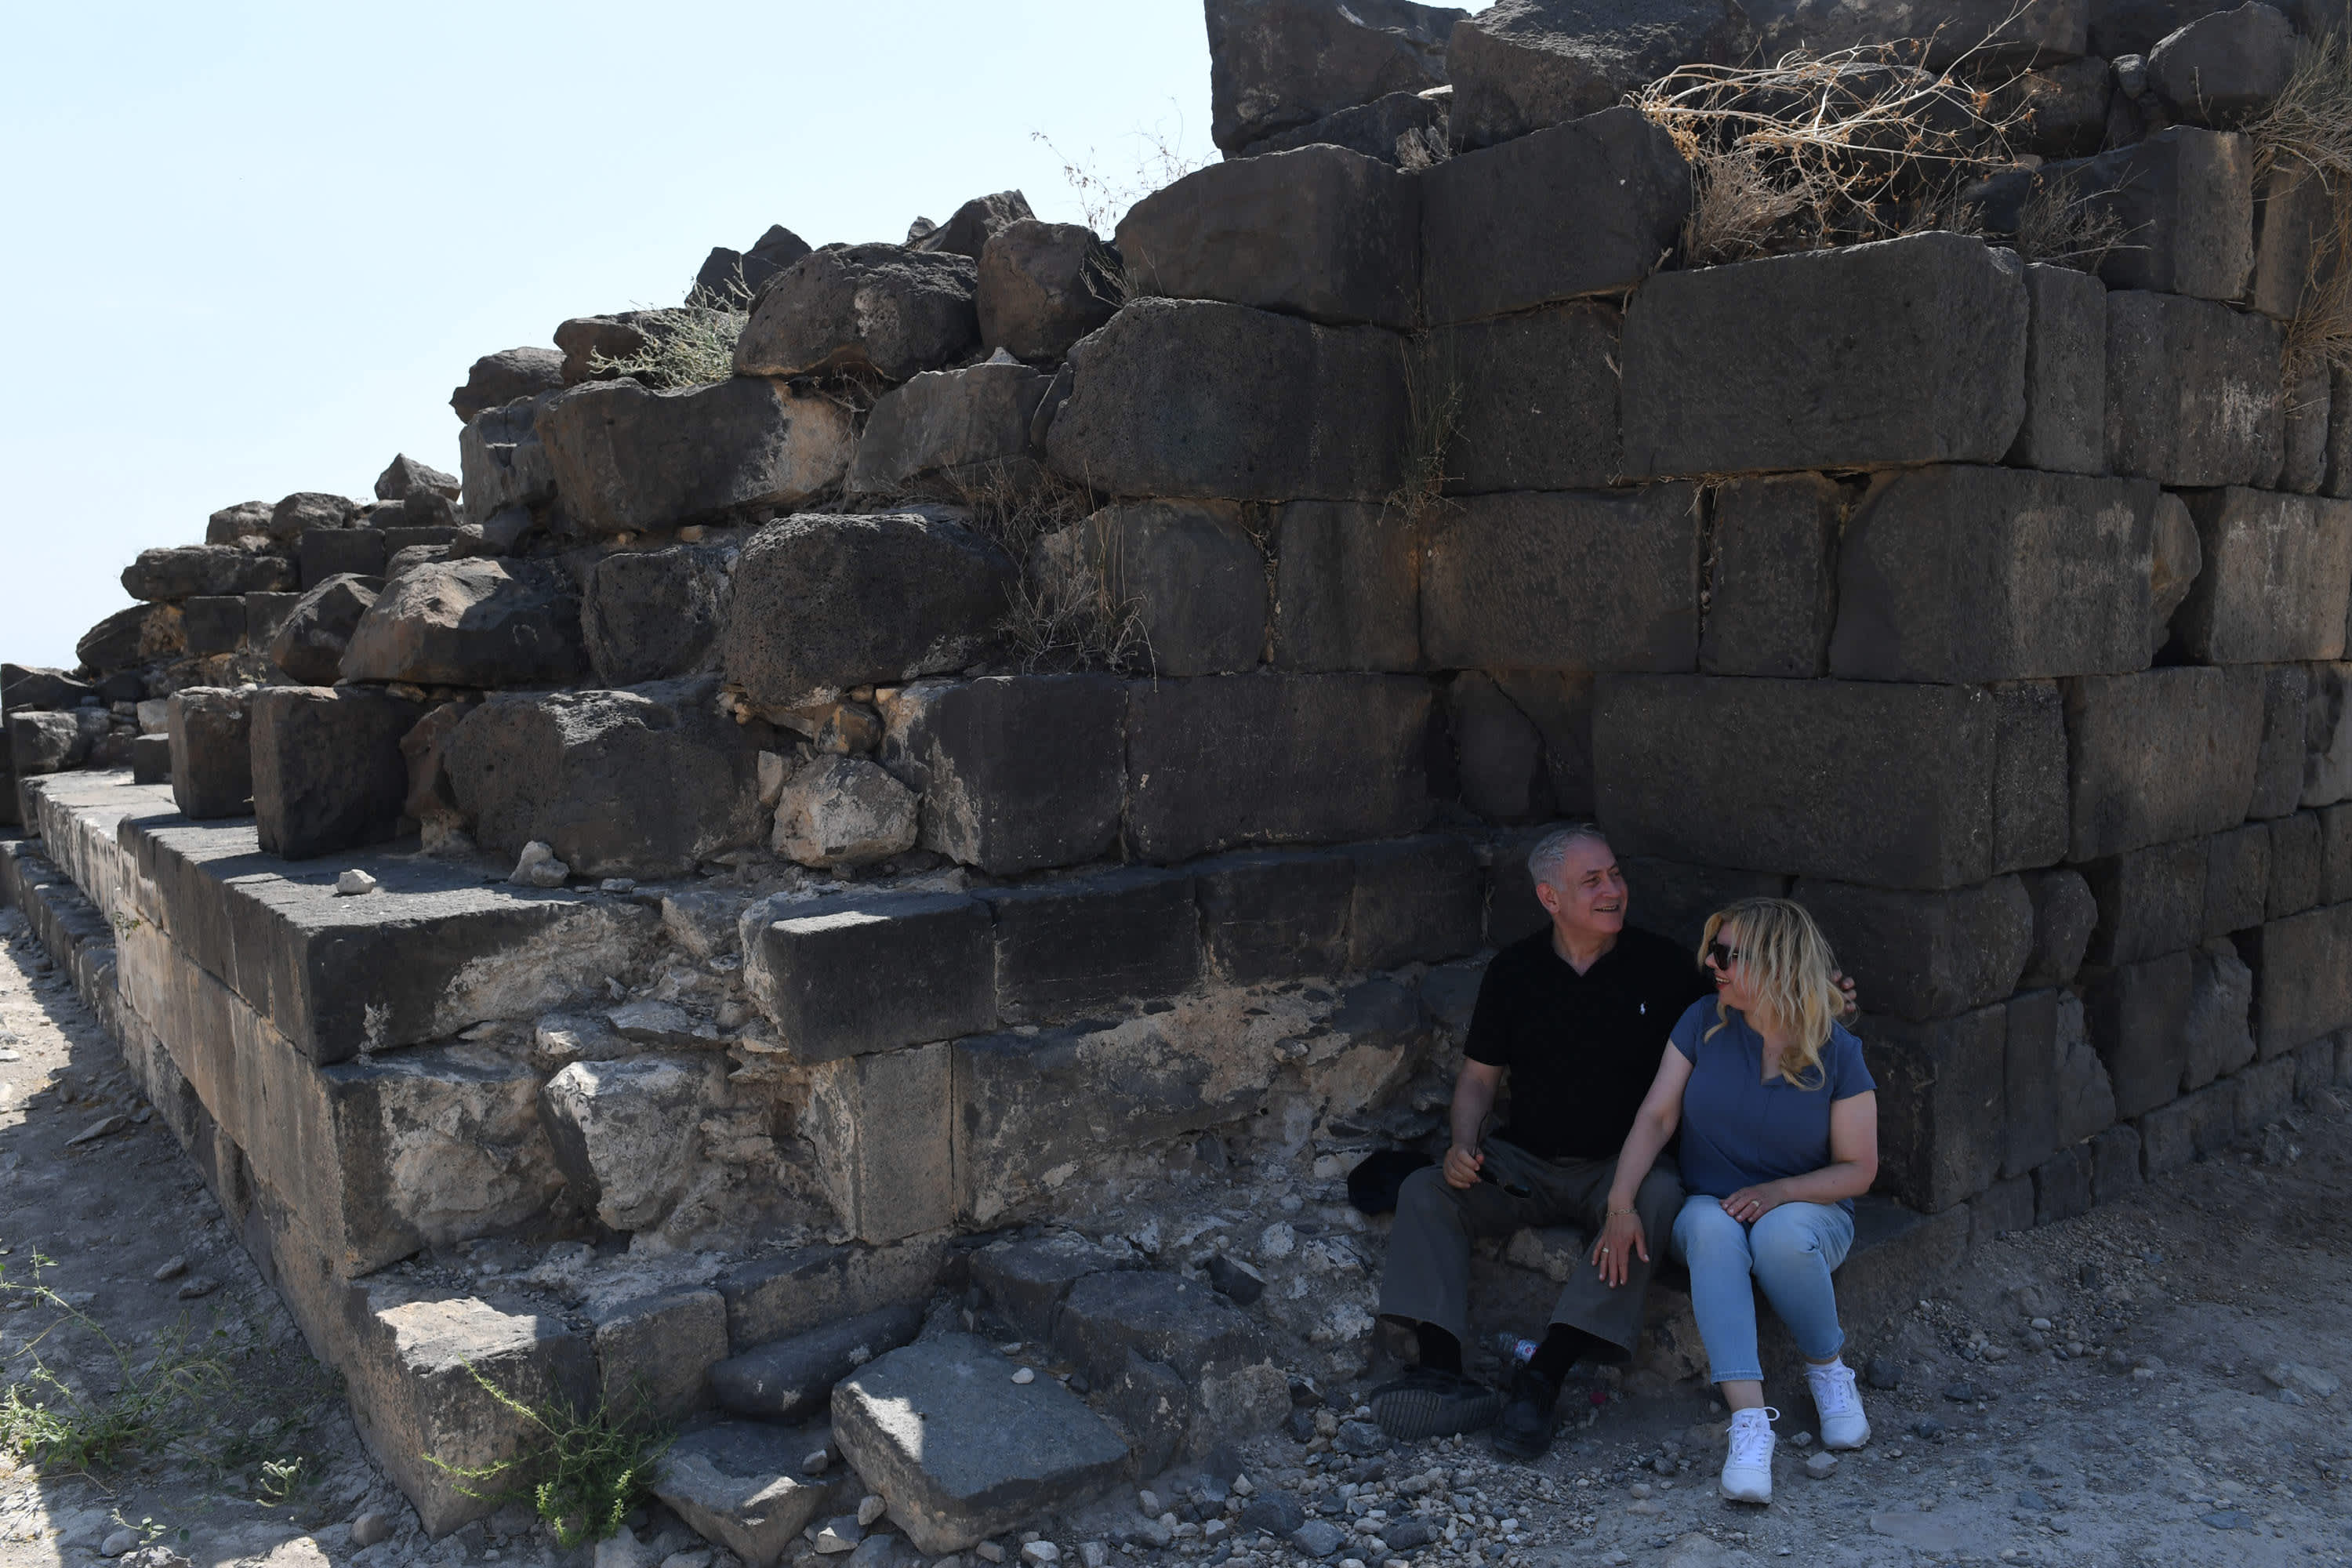 Prime Minister Benjamin Netanyahu and wife Sara Netanyahu at the archeological site Hippos in northern Israel, August 15, 2017. (Credit: Kobi Gideon/ GPO)